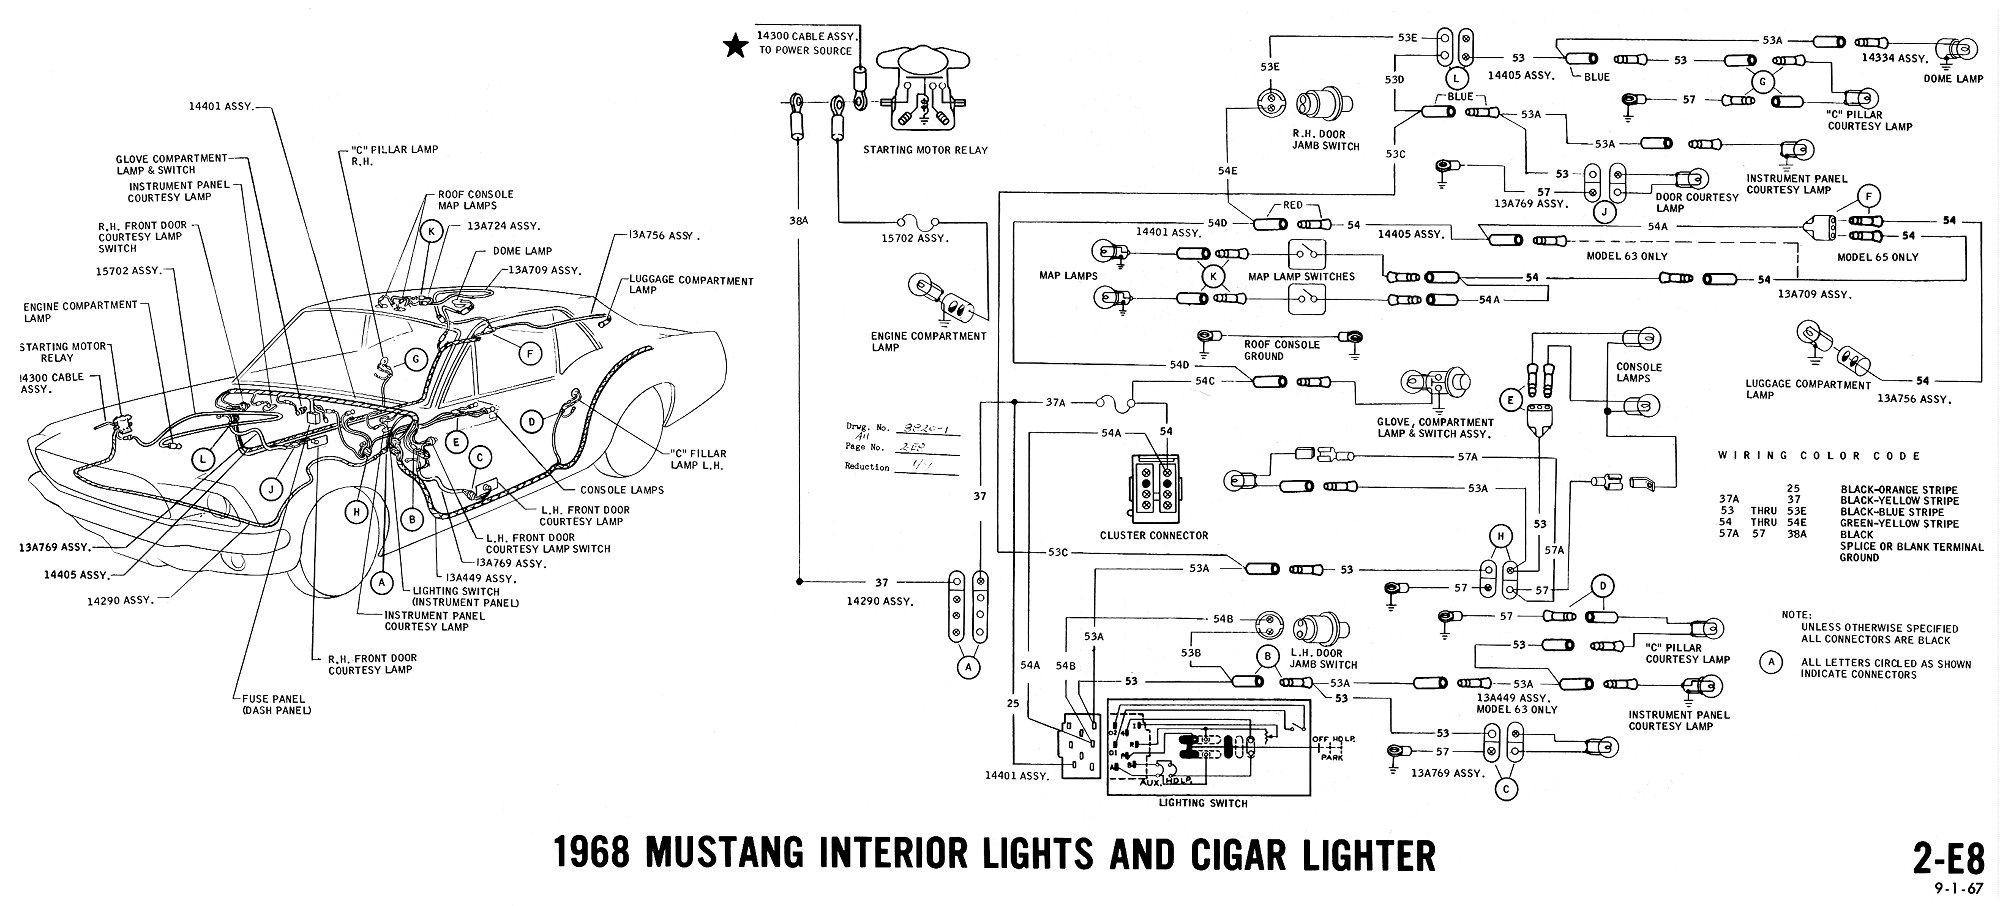 67 Mustang Turn Signal Wiring Diagram - wiring diagram sockets-nku -  sockets-nku.teglieromane.it | Turn Signal Wiring Diagram For 1966 Mustang |  | Teglie Romane